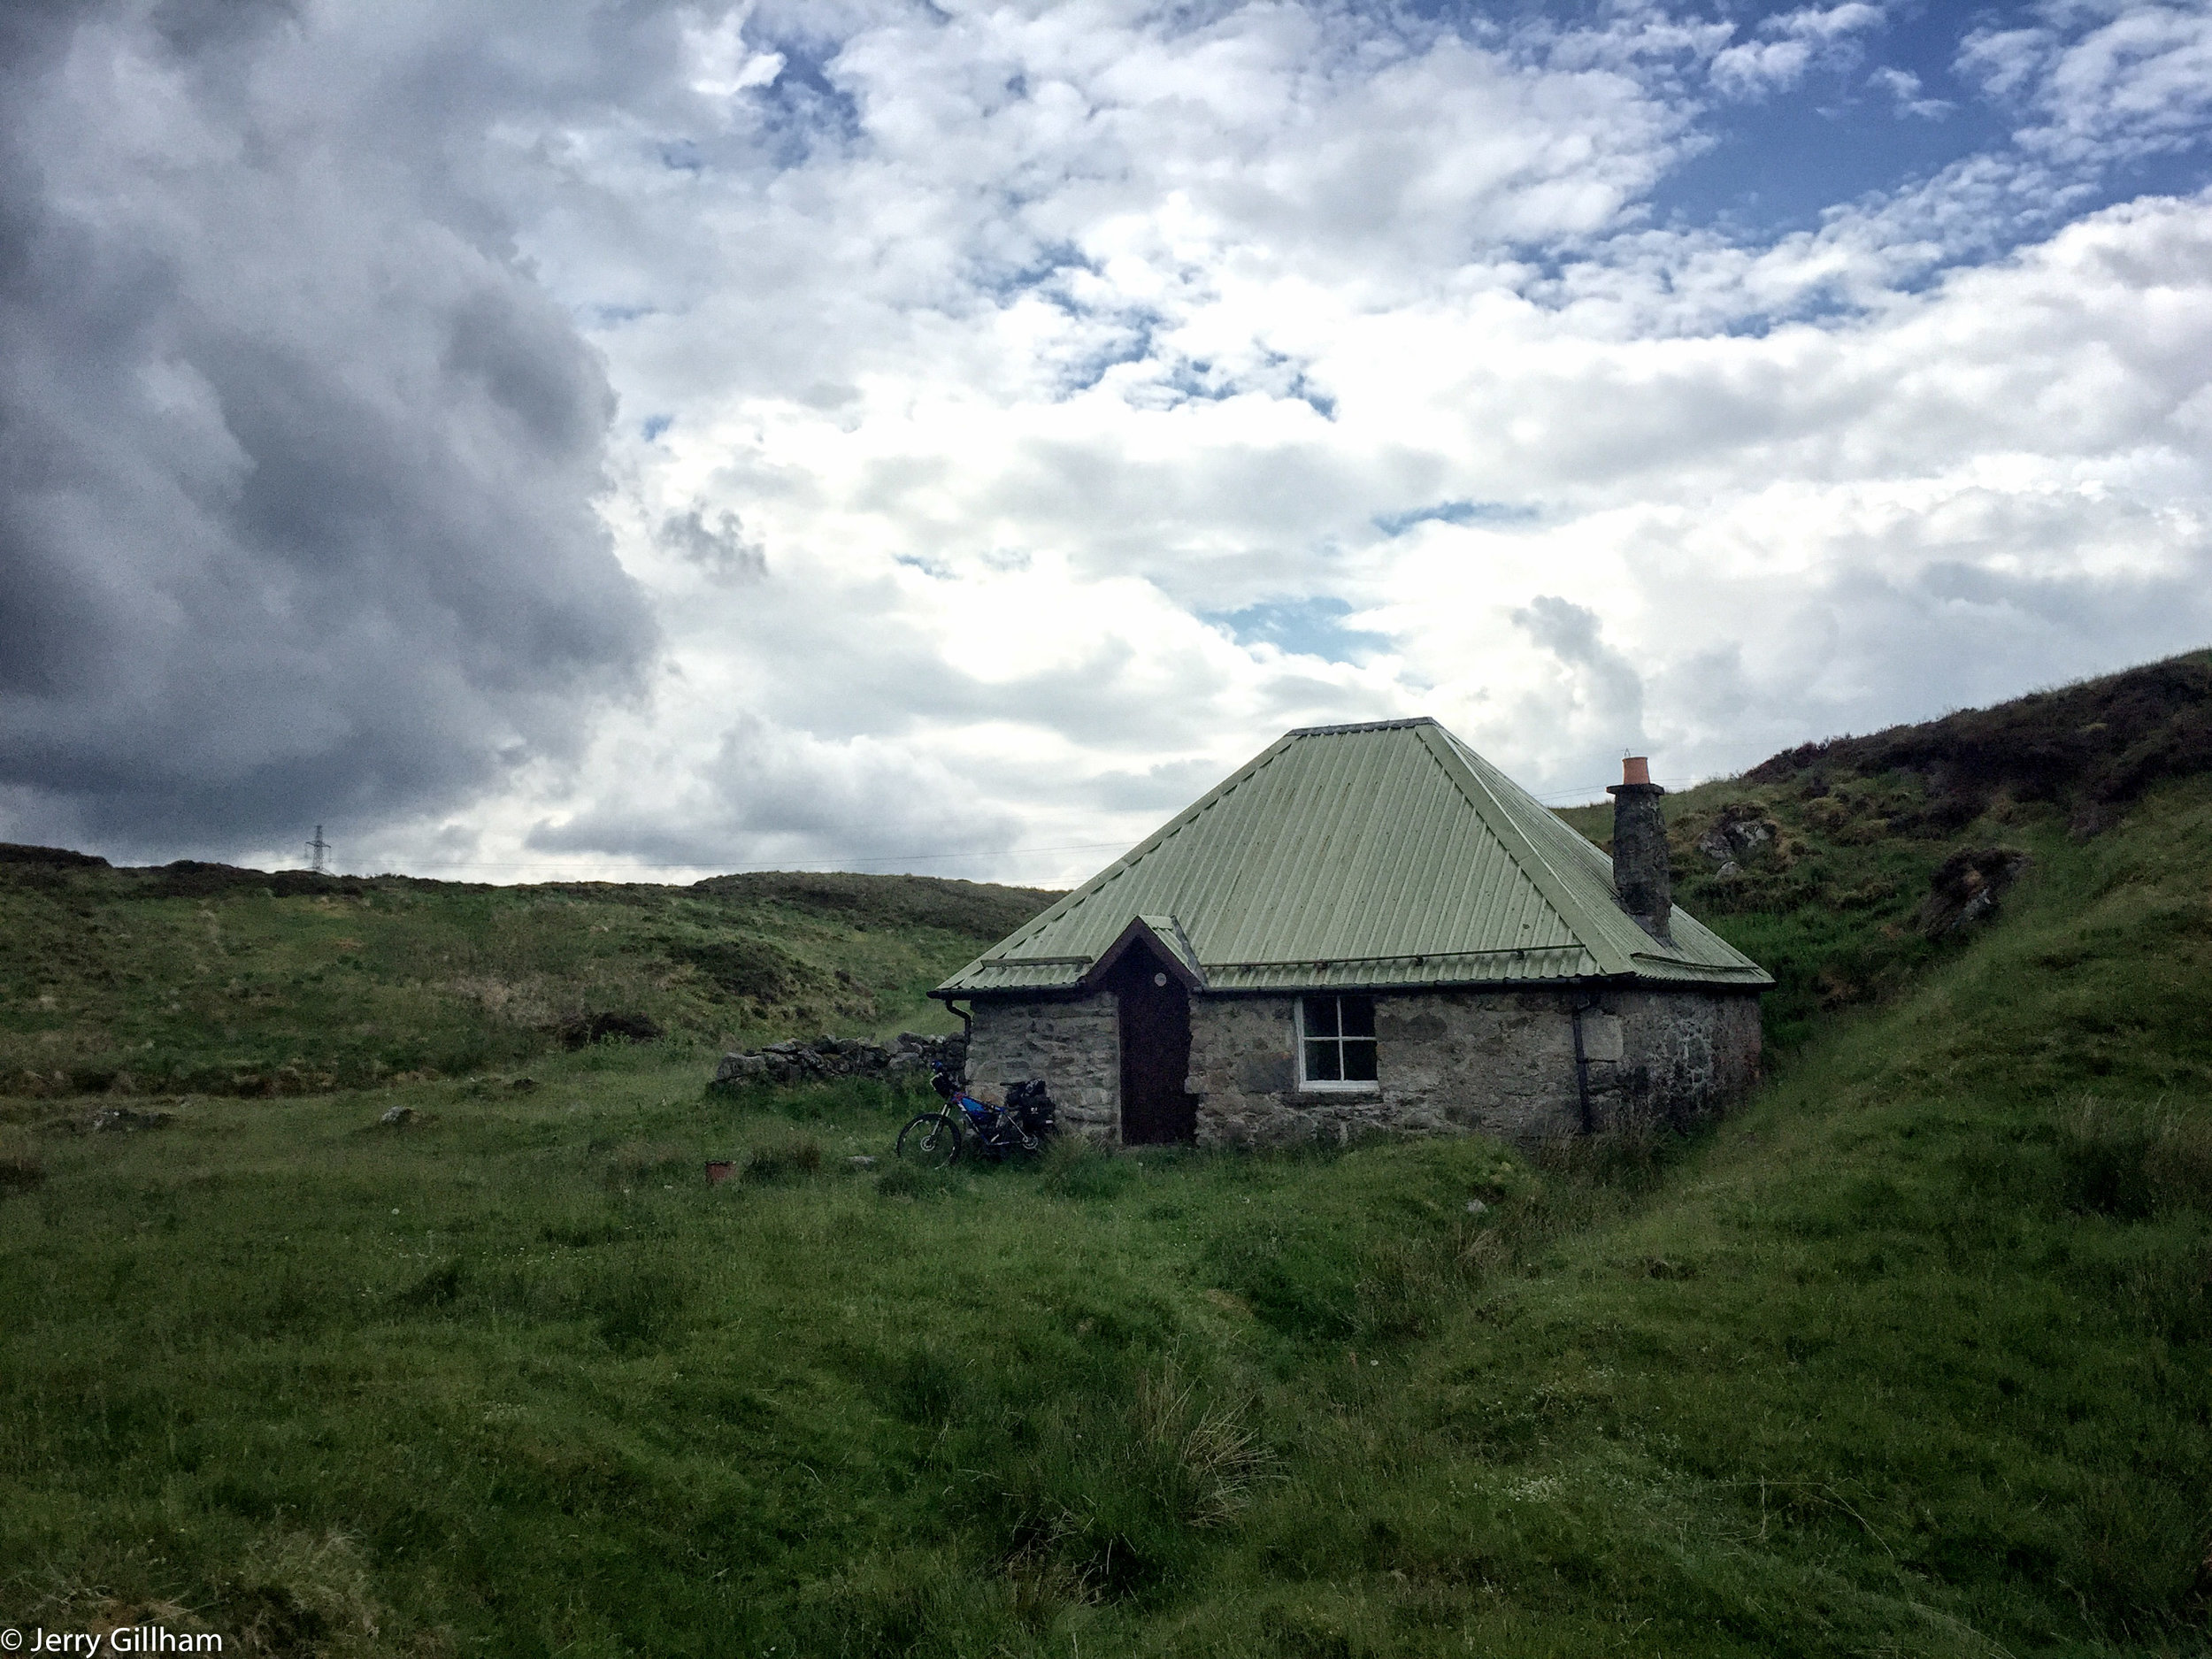 I reached Blackburn of Corrieyairack bothy at about 2:00 and within half an hour it started raining hard again. A couple of walkers dropped in to shelter until a break but other than that I didn't see anyone, hiding inside as the rain continued on and off until well into the night.